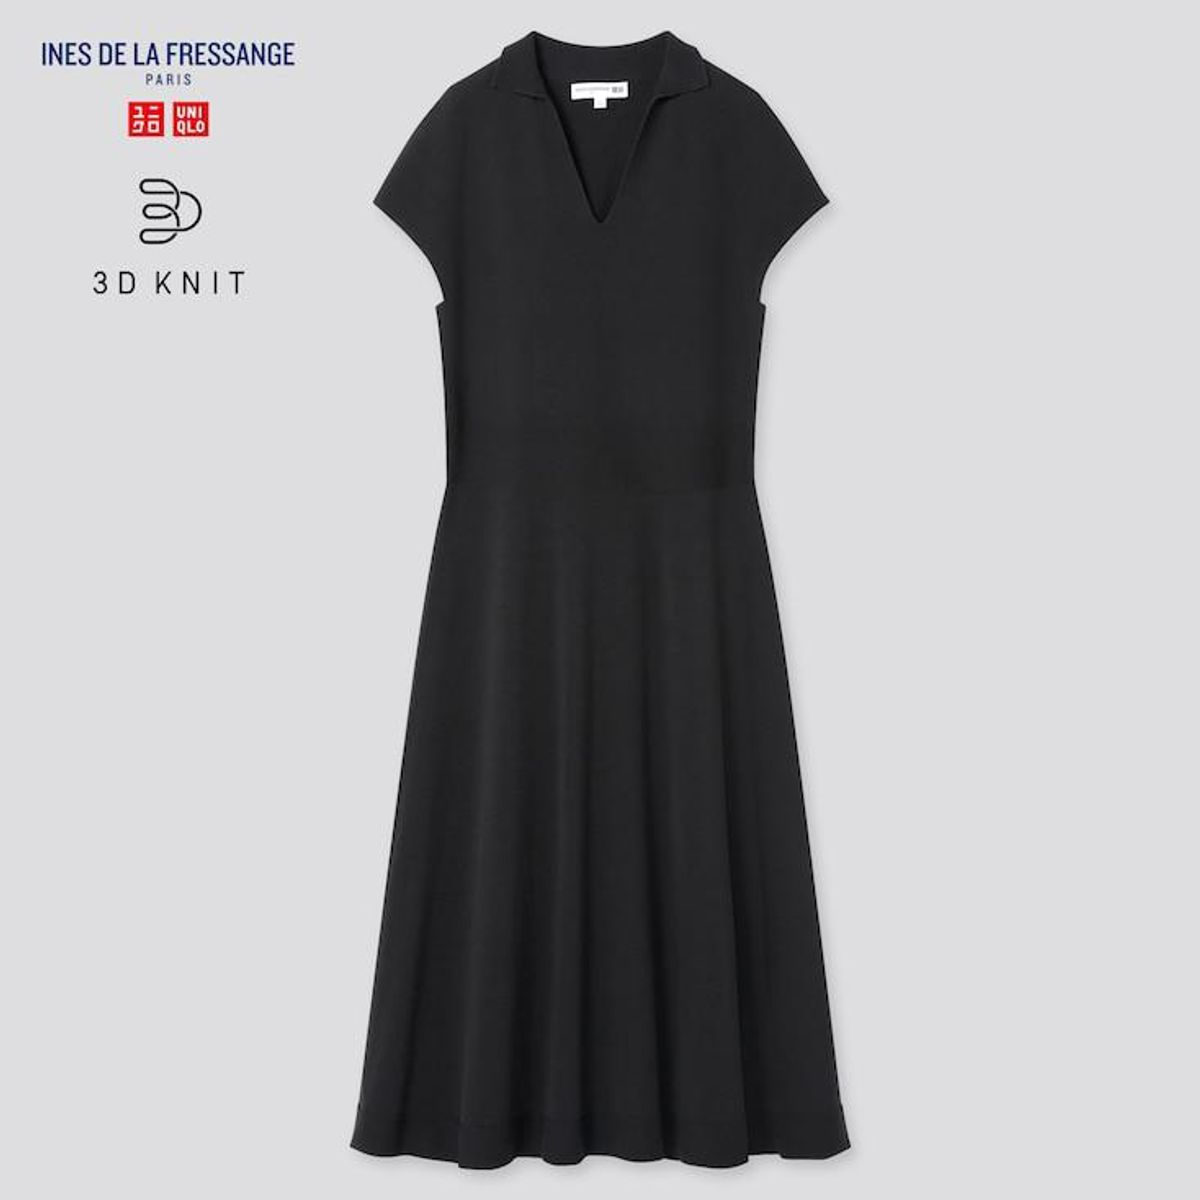 uniqlo ines de la fressange 3d knit short sleeve dress